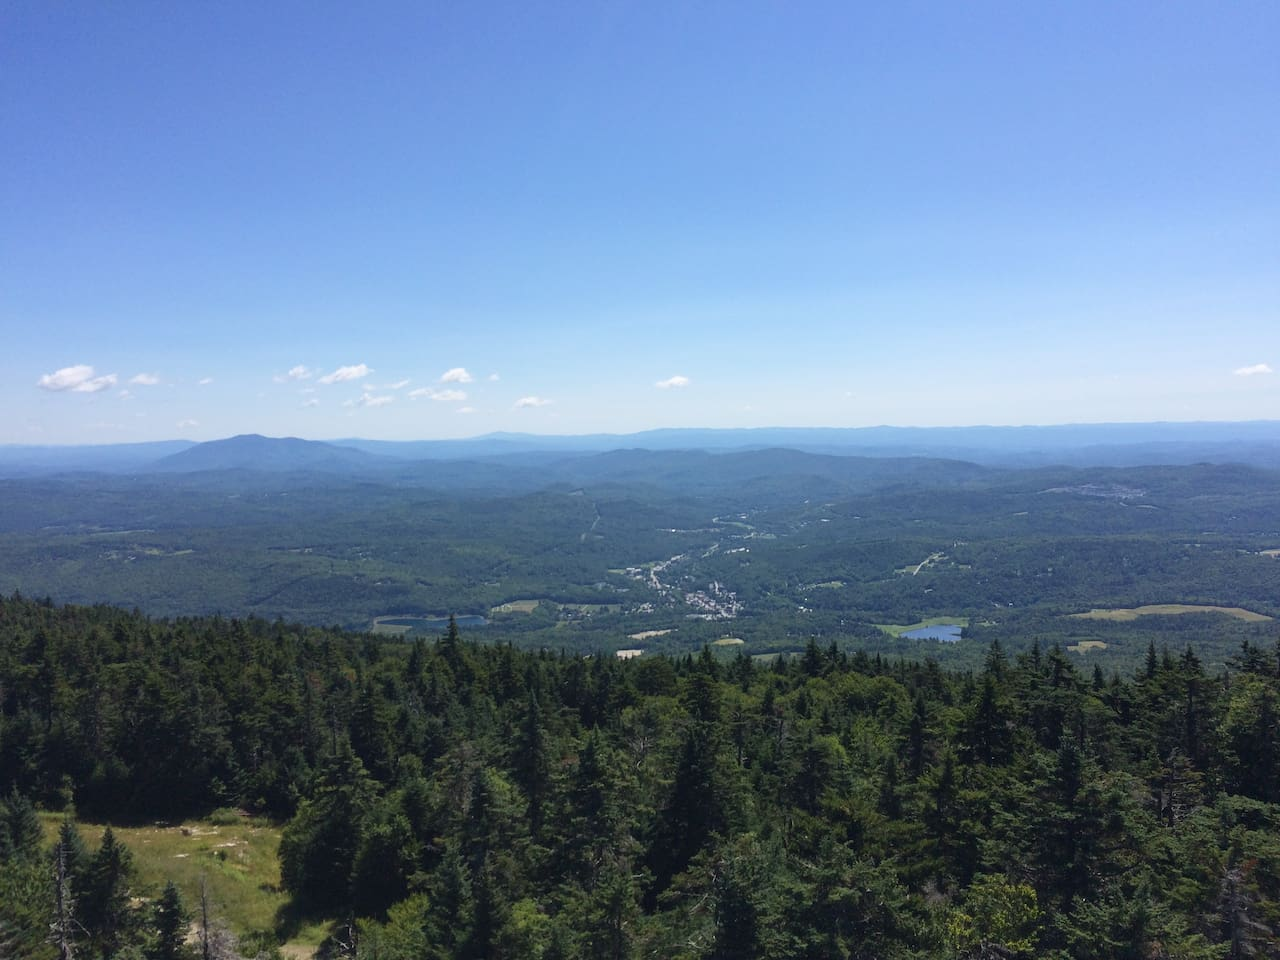 Top of Okemo looking at downtown Ludlow